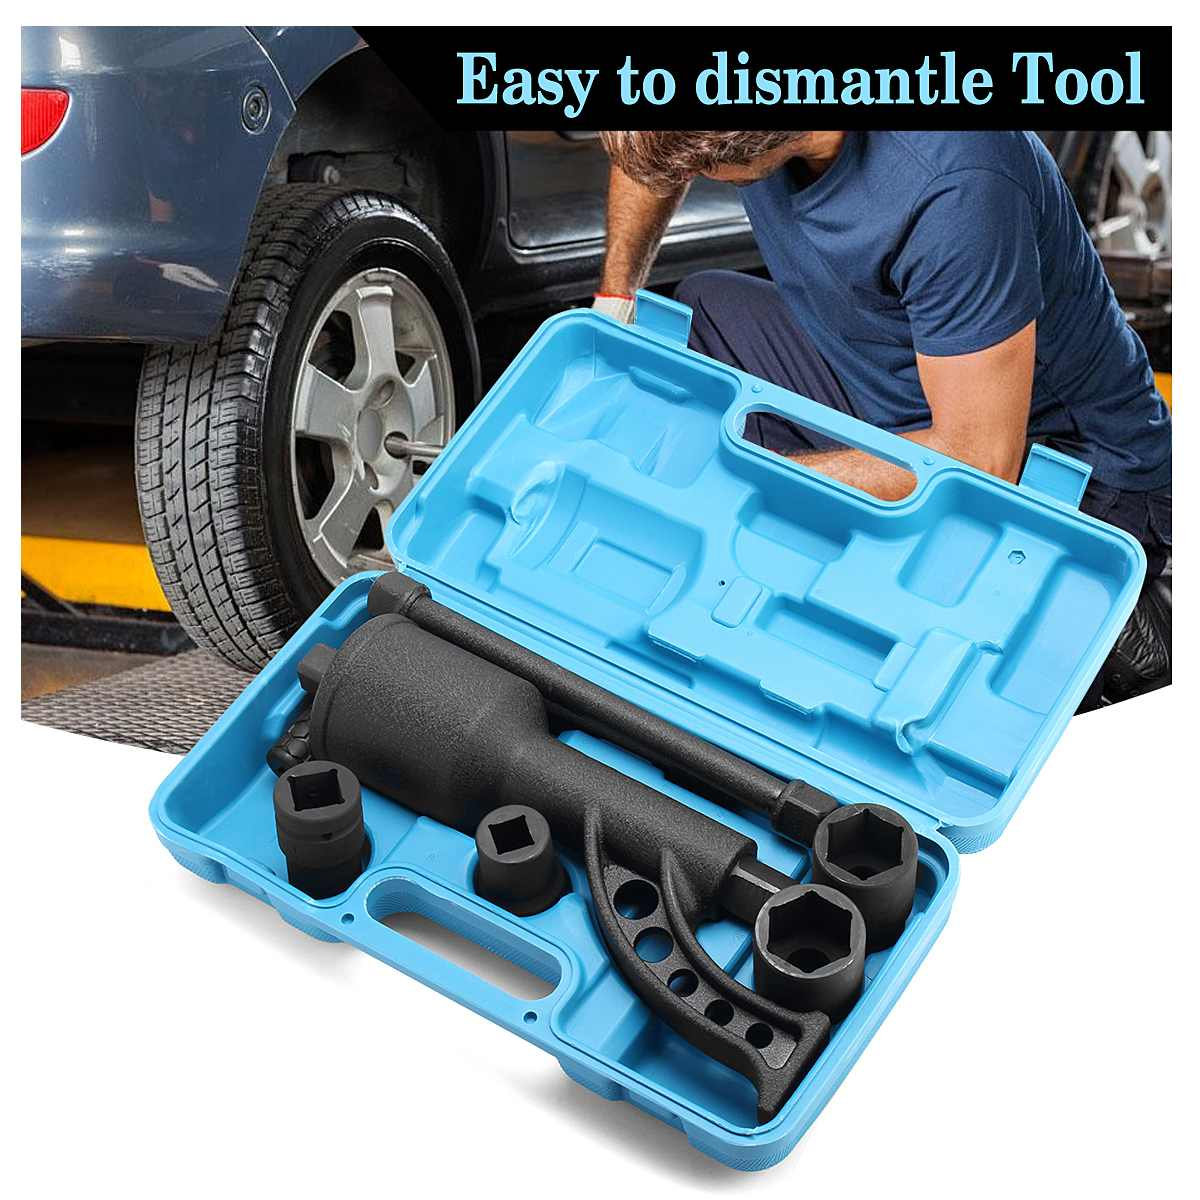 7PCS Torque Multiplier Wrench Lug Nut Lugnuts Remover Labor Saving Socket Car Wash Maintenance Engine Care Tire Tools Kit